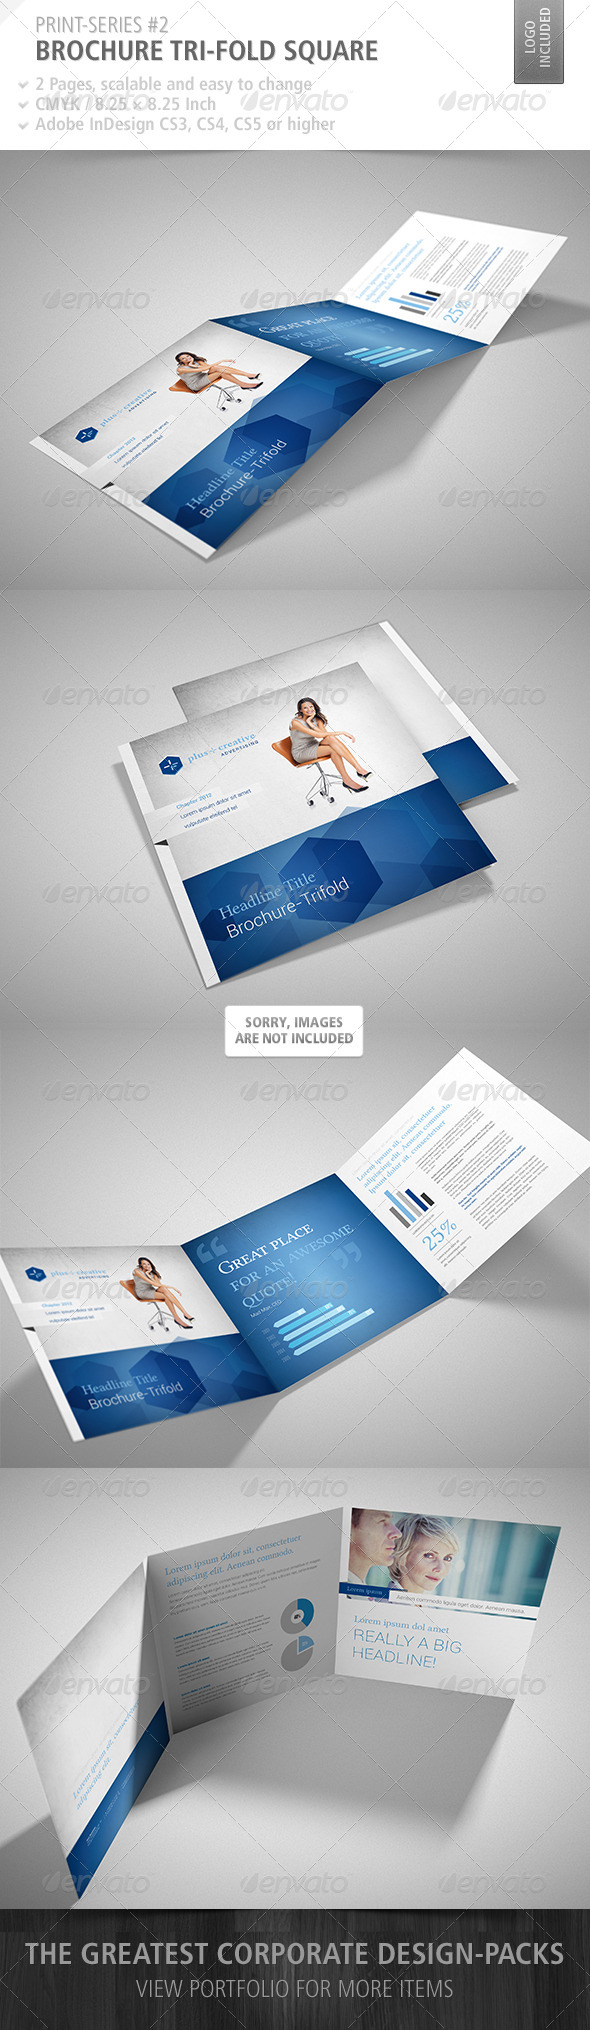 GraphicRiver Brochure Tri-Fold Square Print-Series #2 4695998